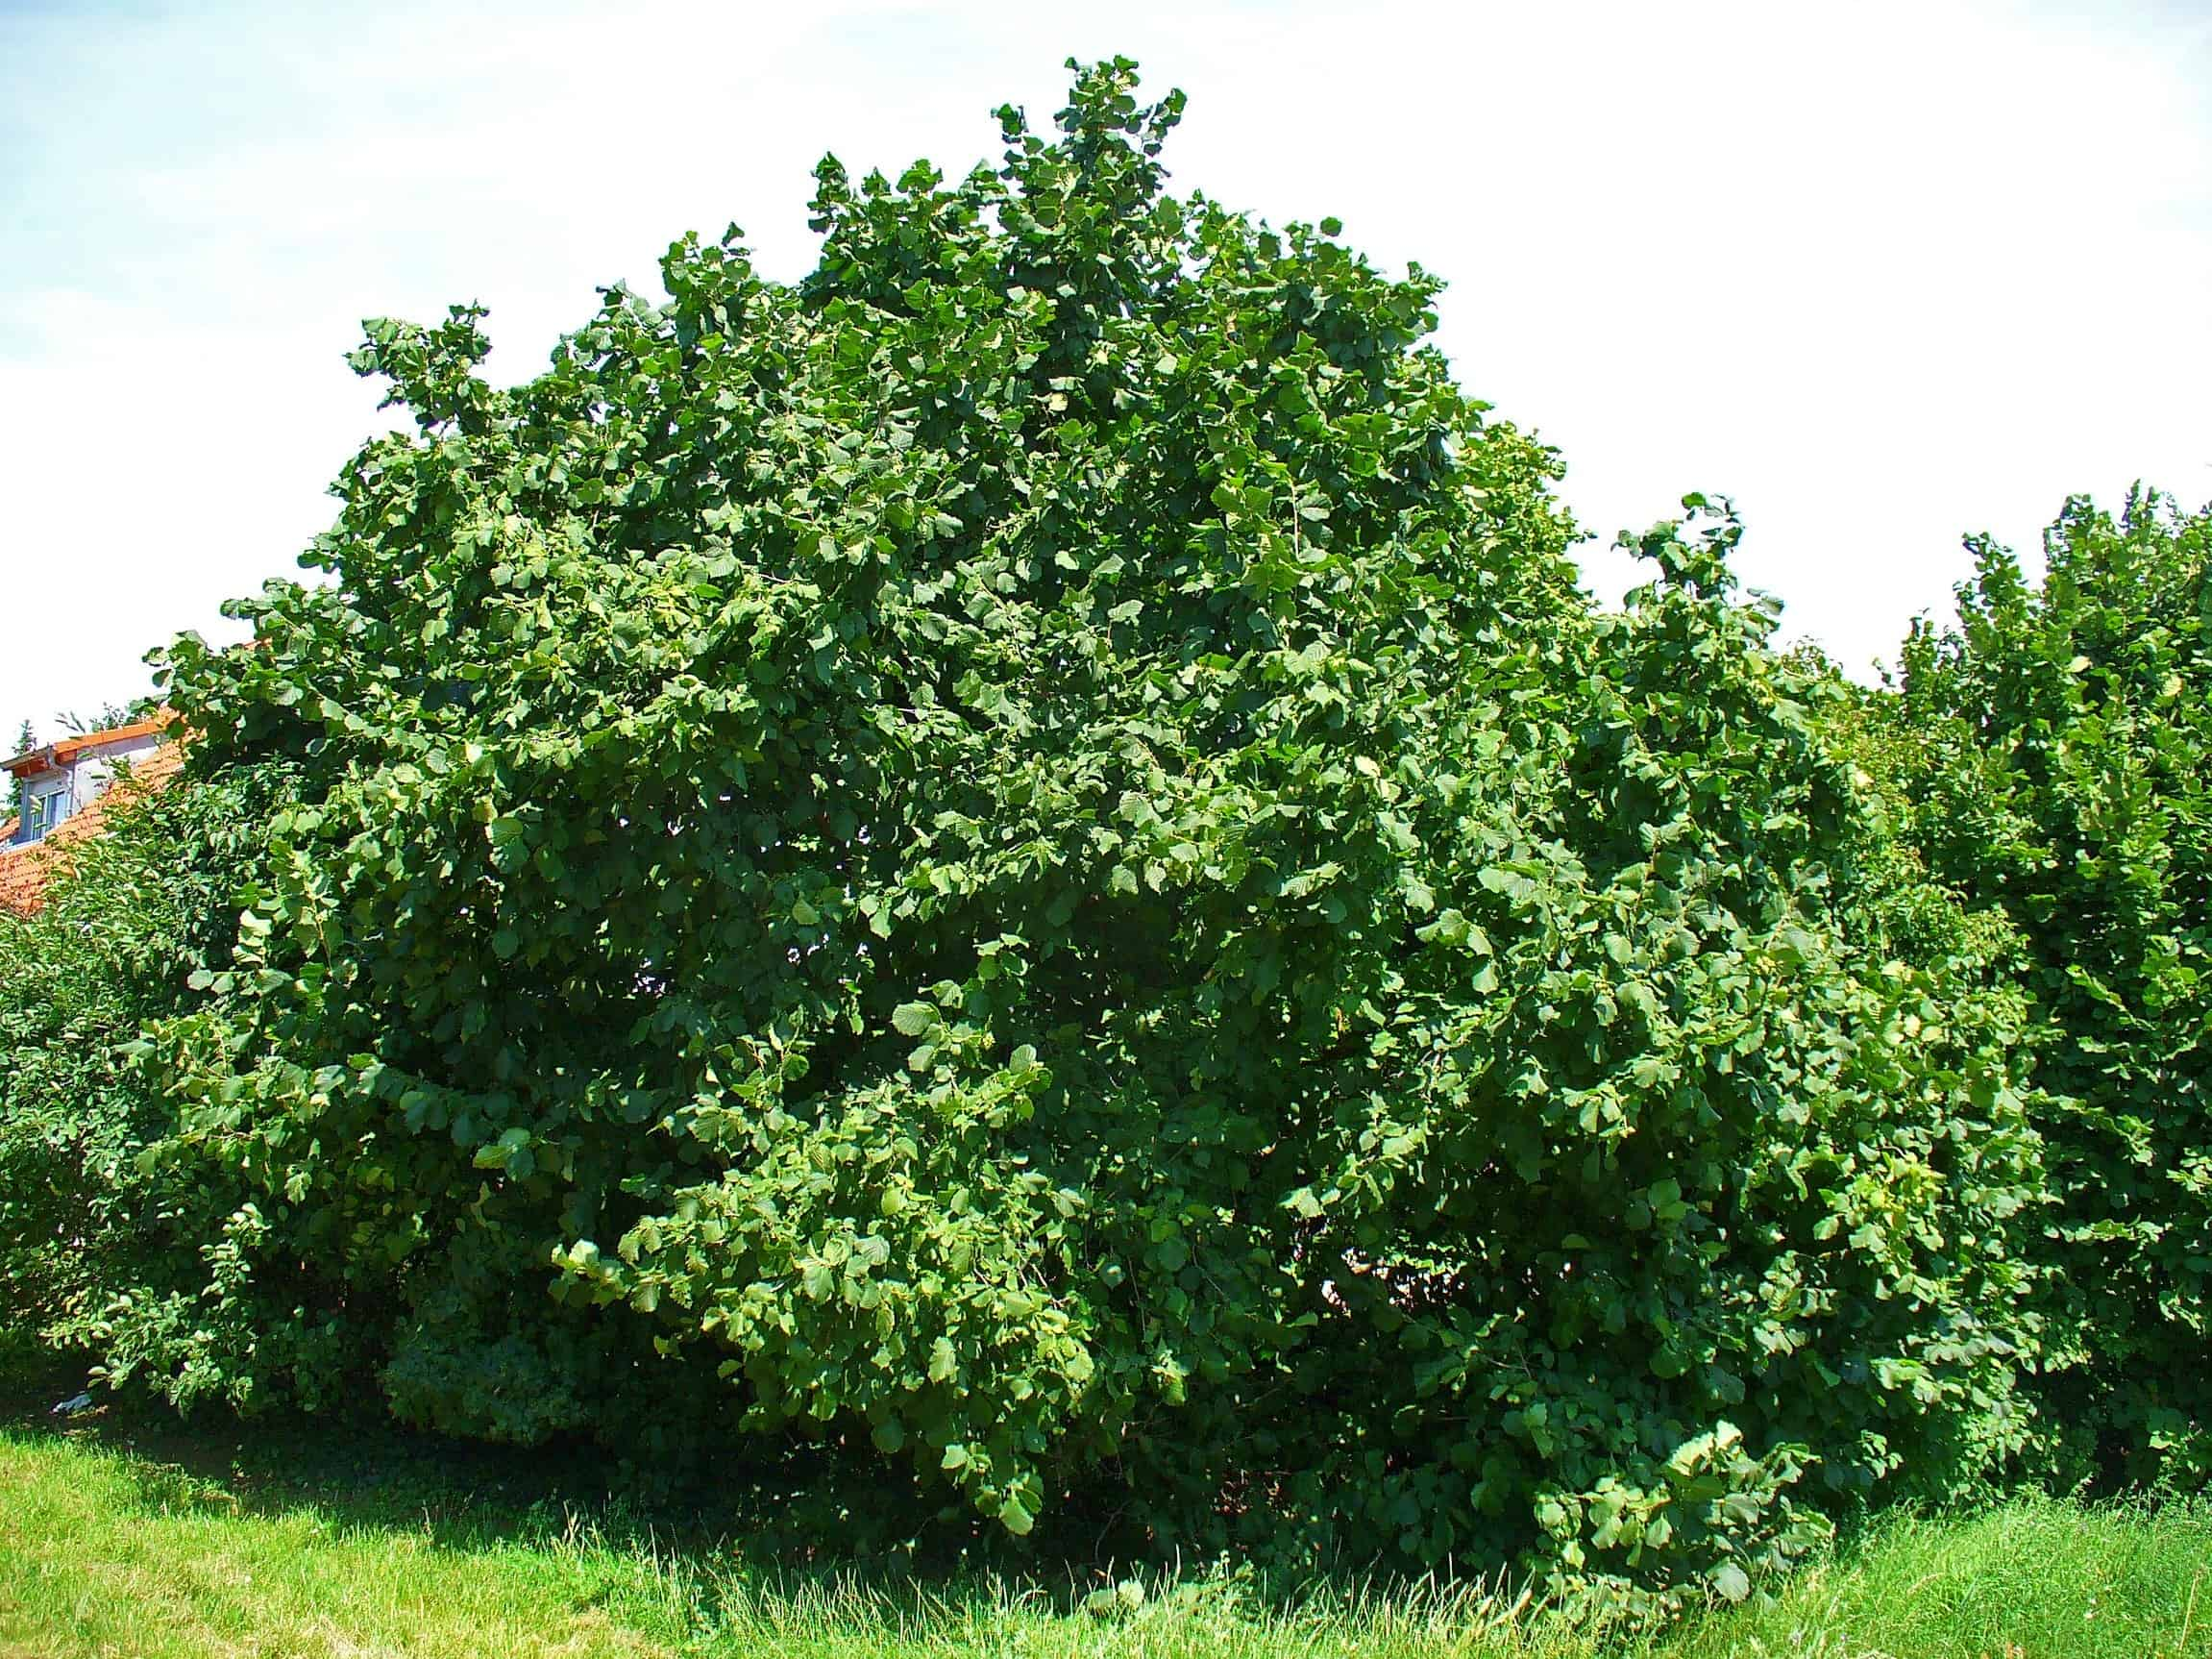 Corylus_avellana_tree